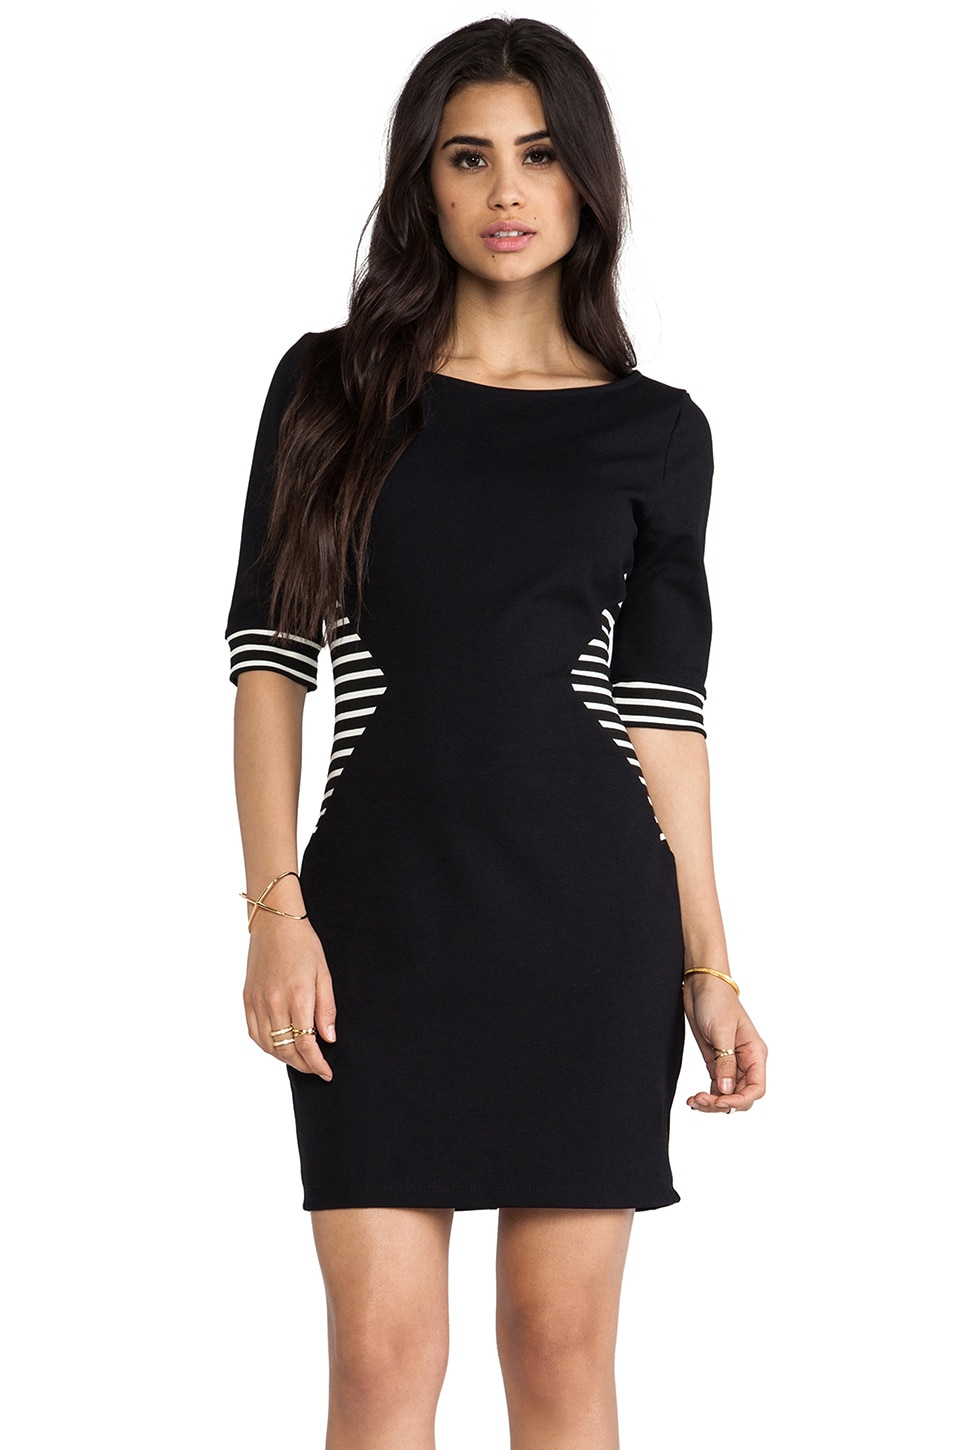 LA Made Colorblocked Striped Boatneck Elbow Sleeve Dress in Stripe & Black